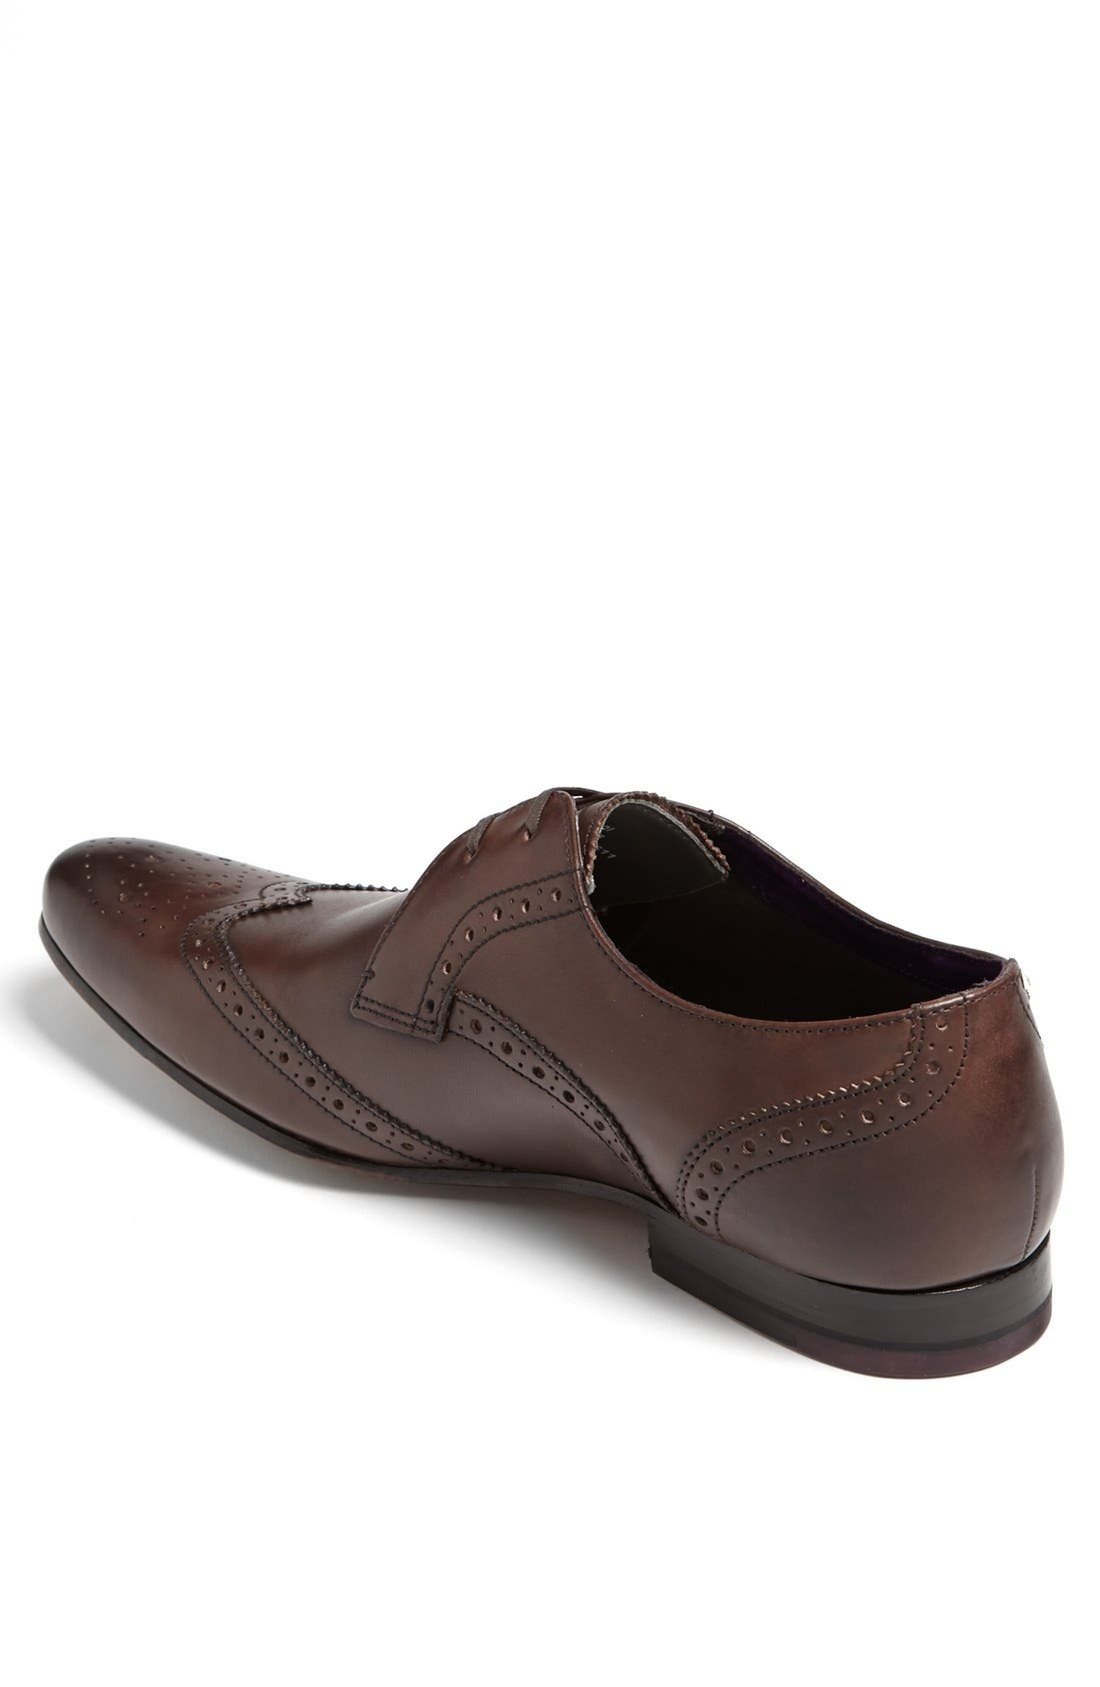 Alternate Image 2  - Ted Baker London 'Nenoi' Wingtip